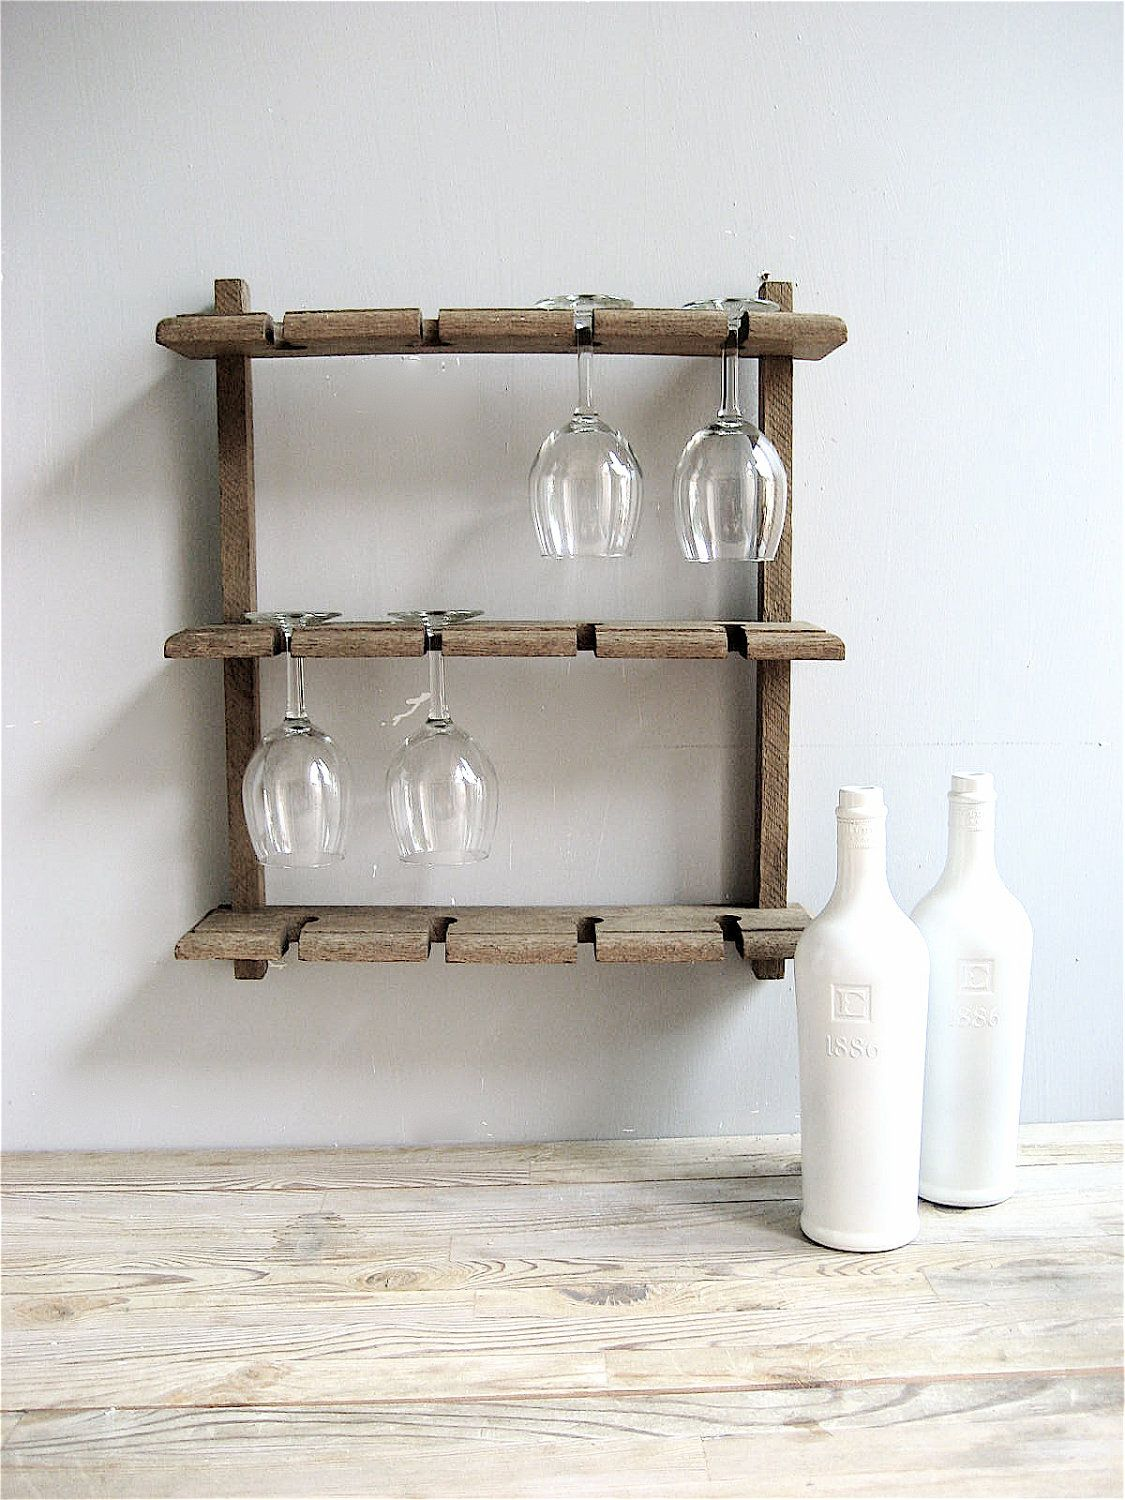 teen-gif-vintage-oak-hanging-wine-glass-rack-thick